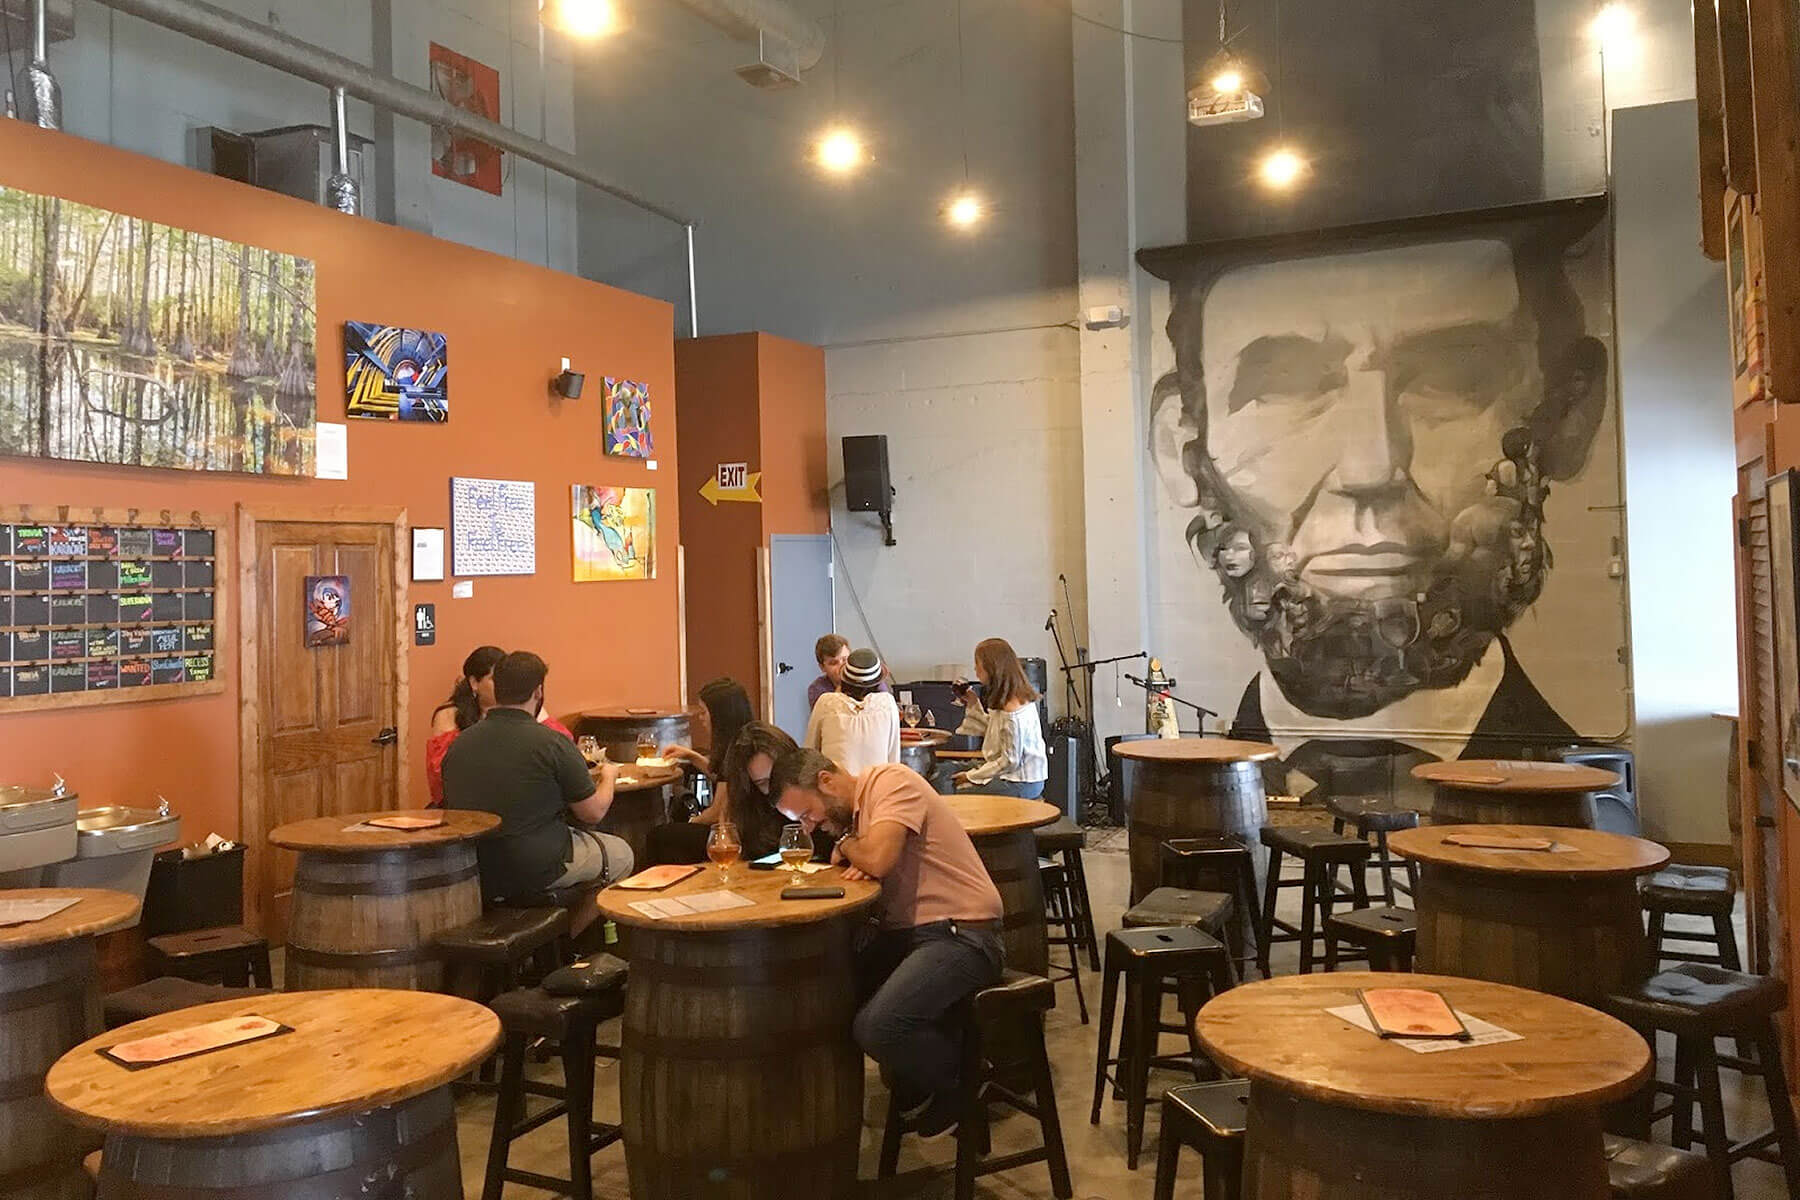 Inside the Lincoln's Beard Brewing Co. taproom in Miami, Florida